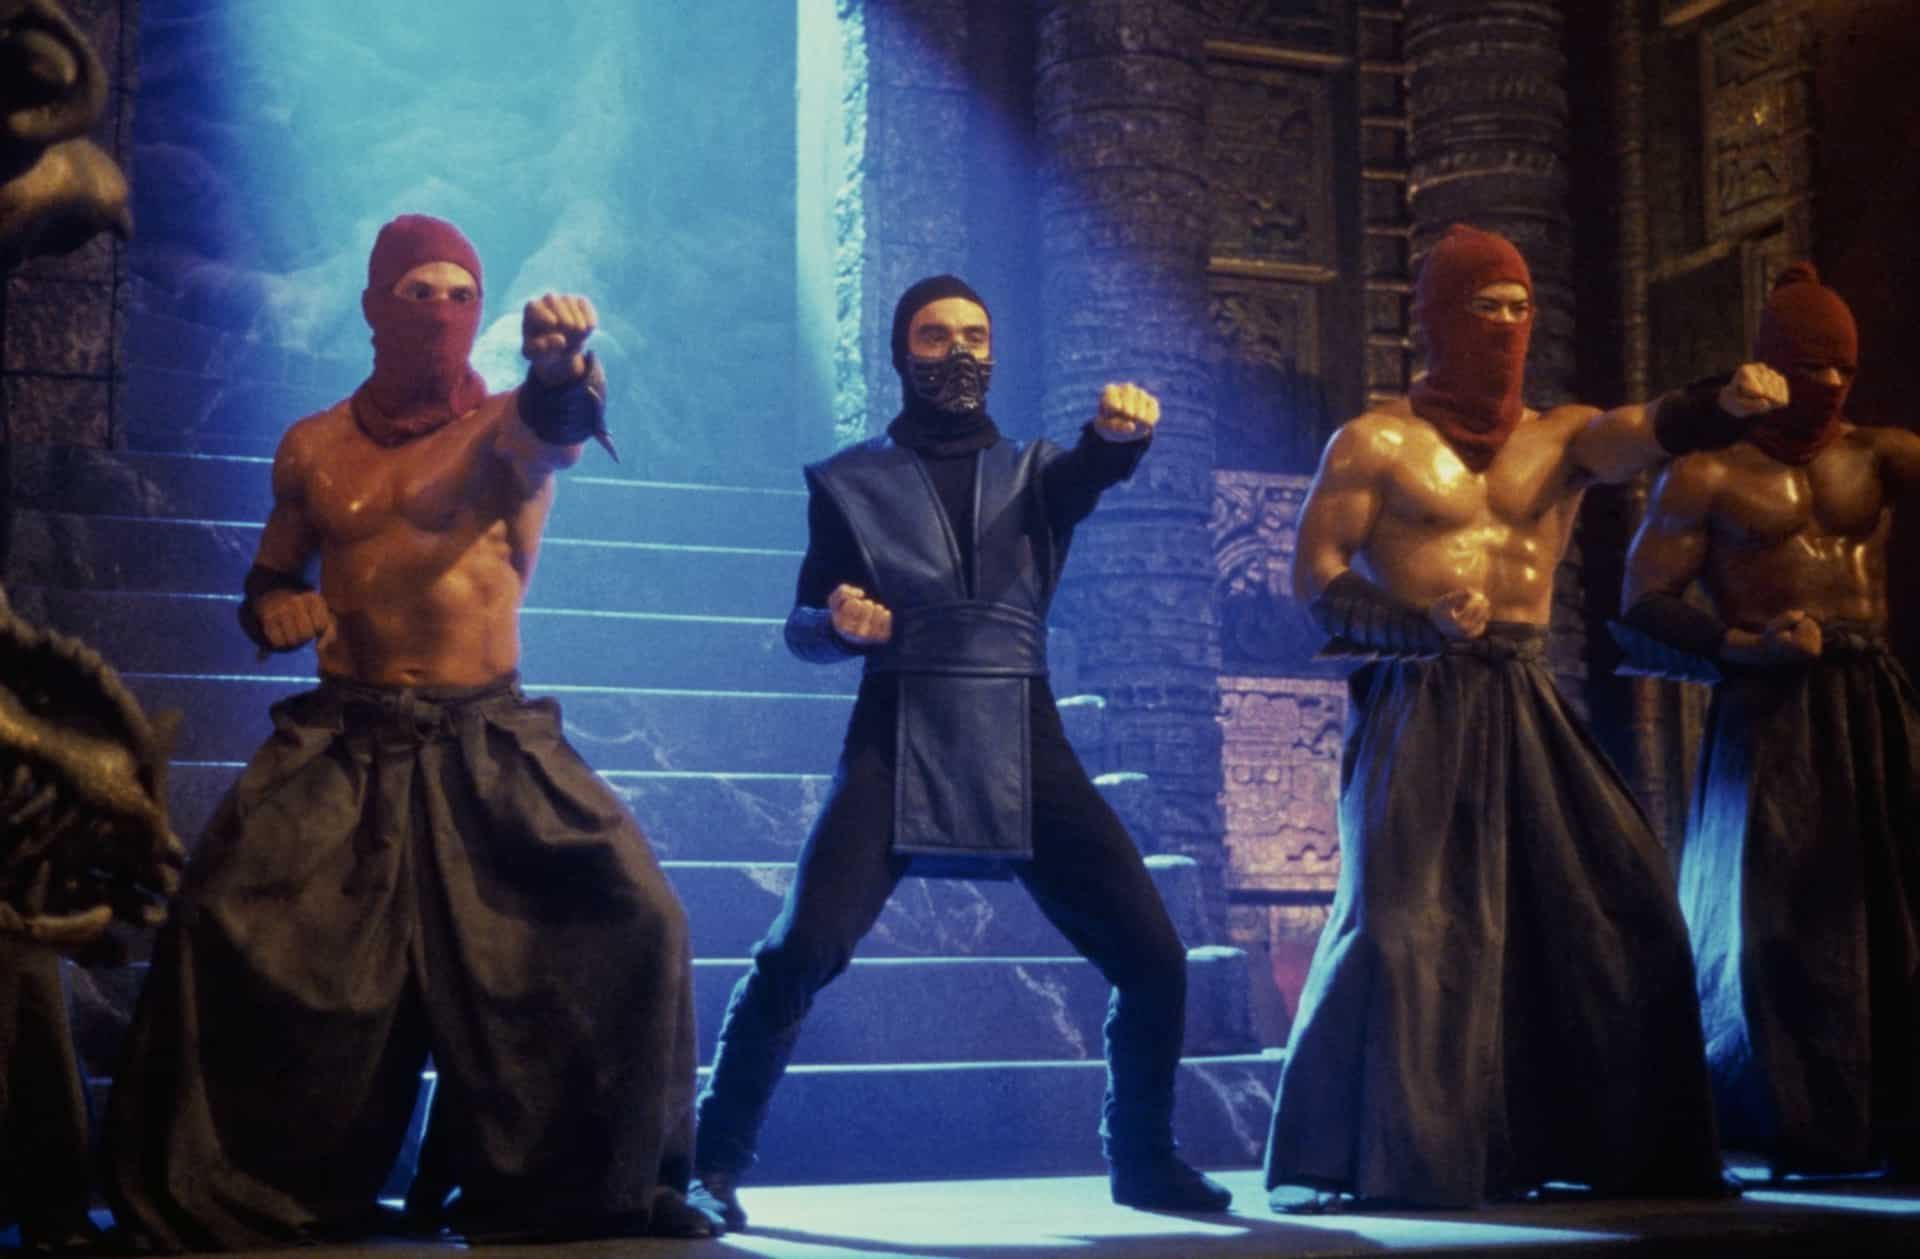 Live action Sub-Zero striking a martial arts pose with three other men.